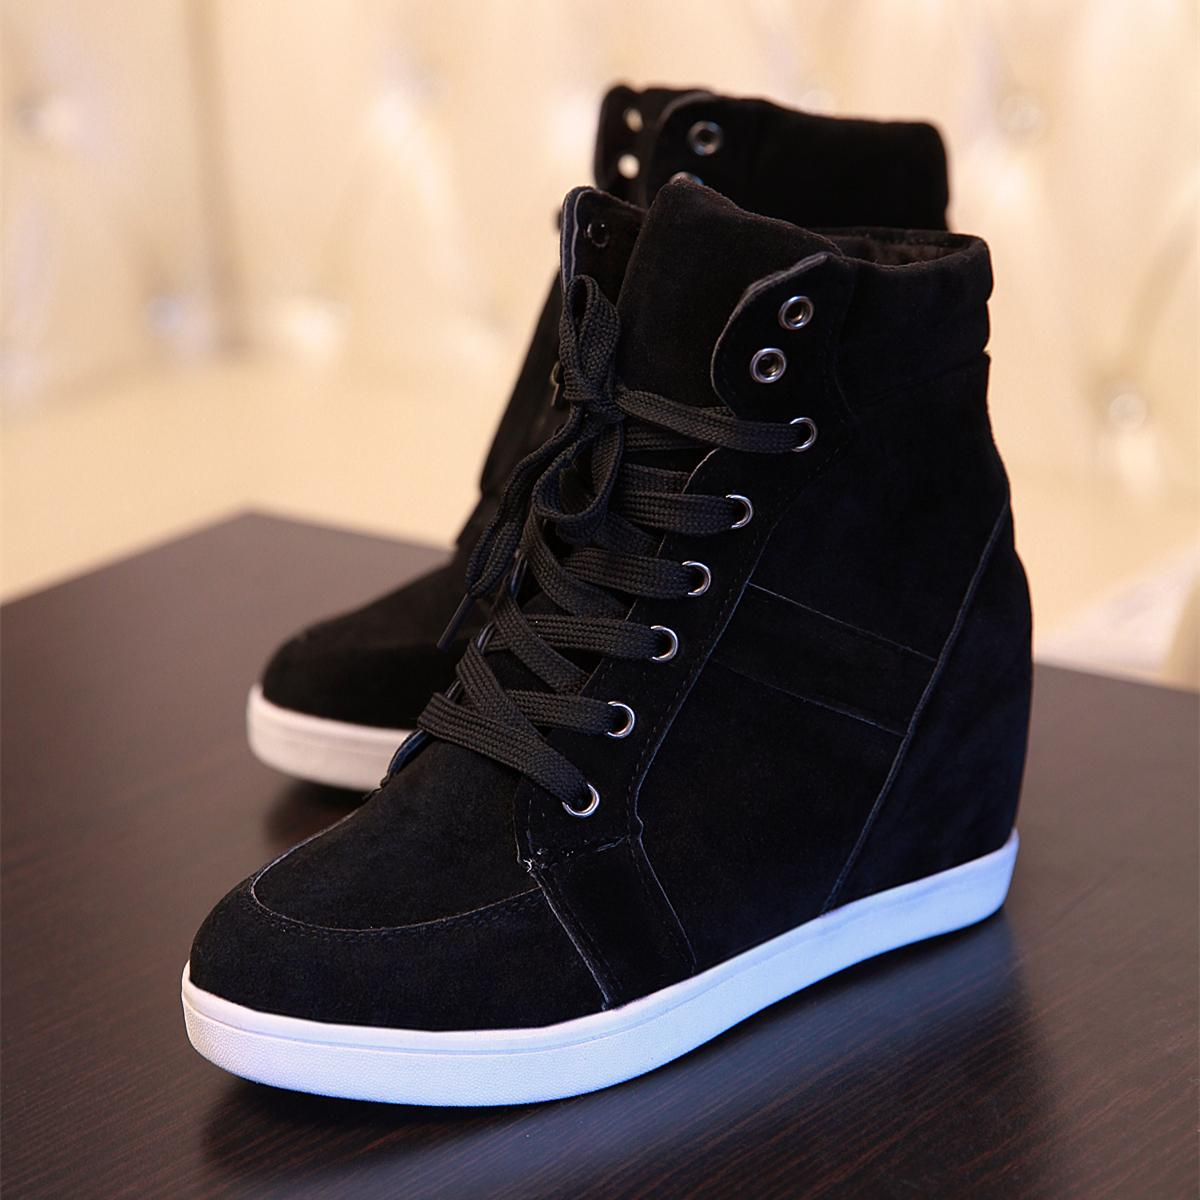 high top wedge sneakers Shop Clothing